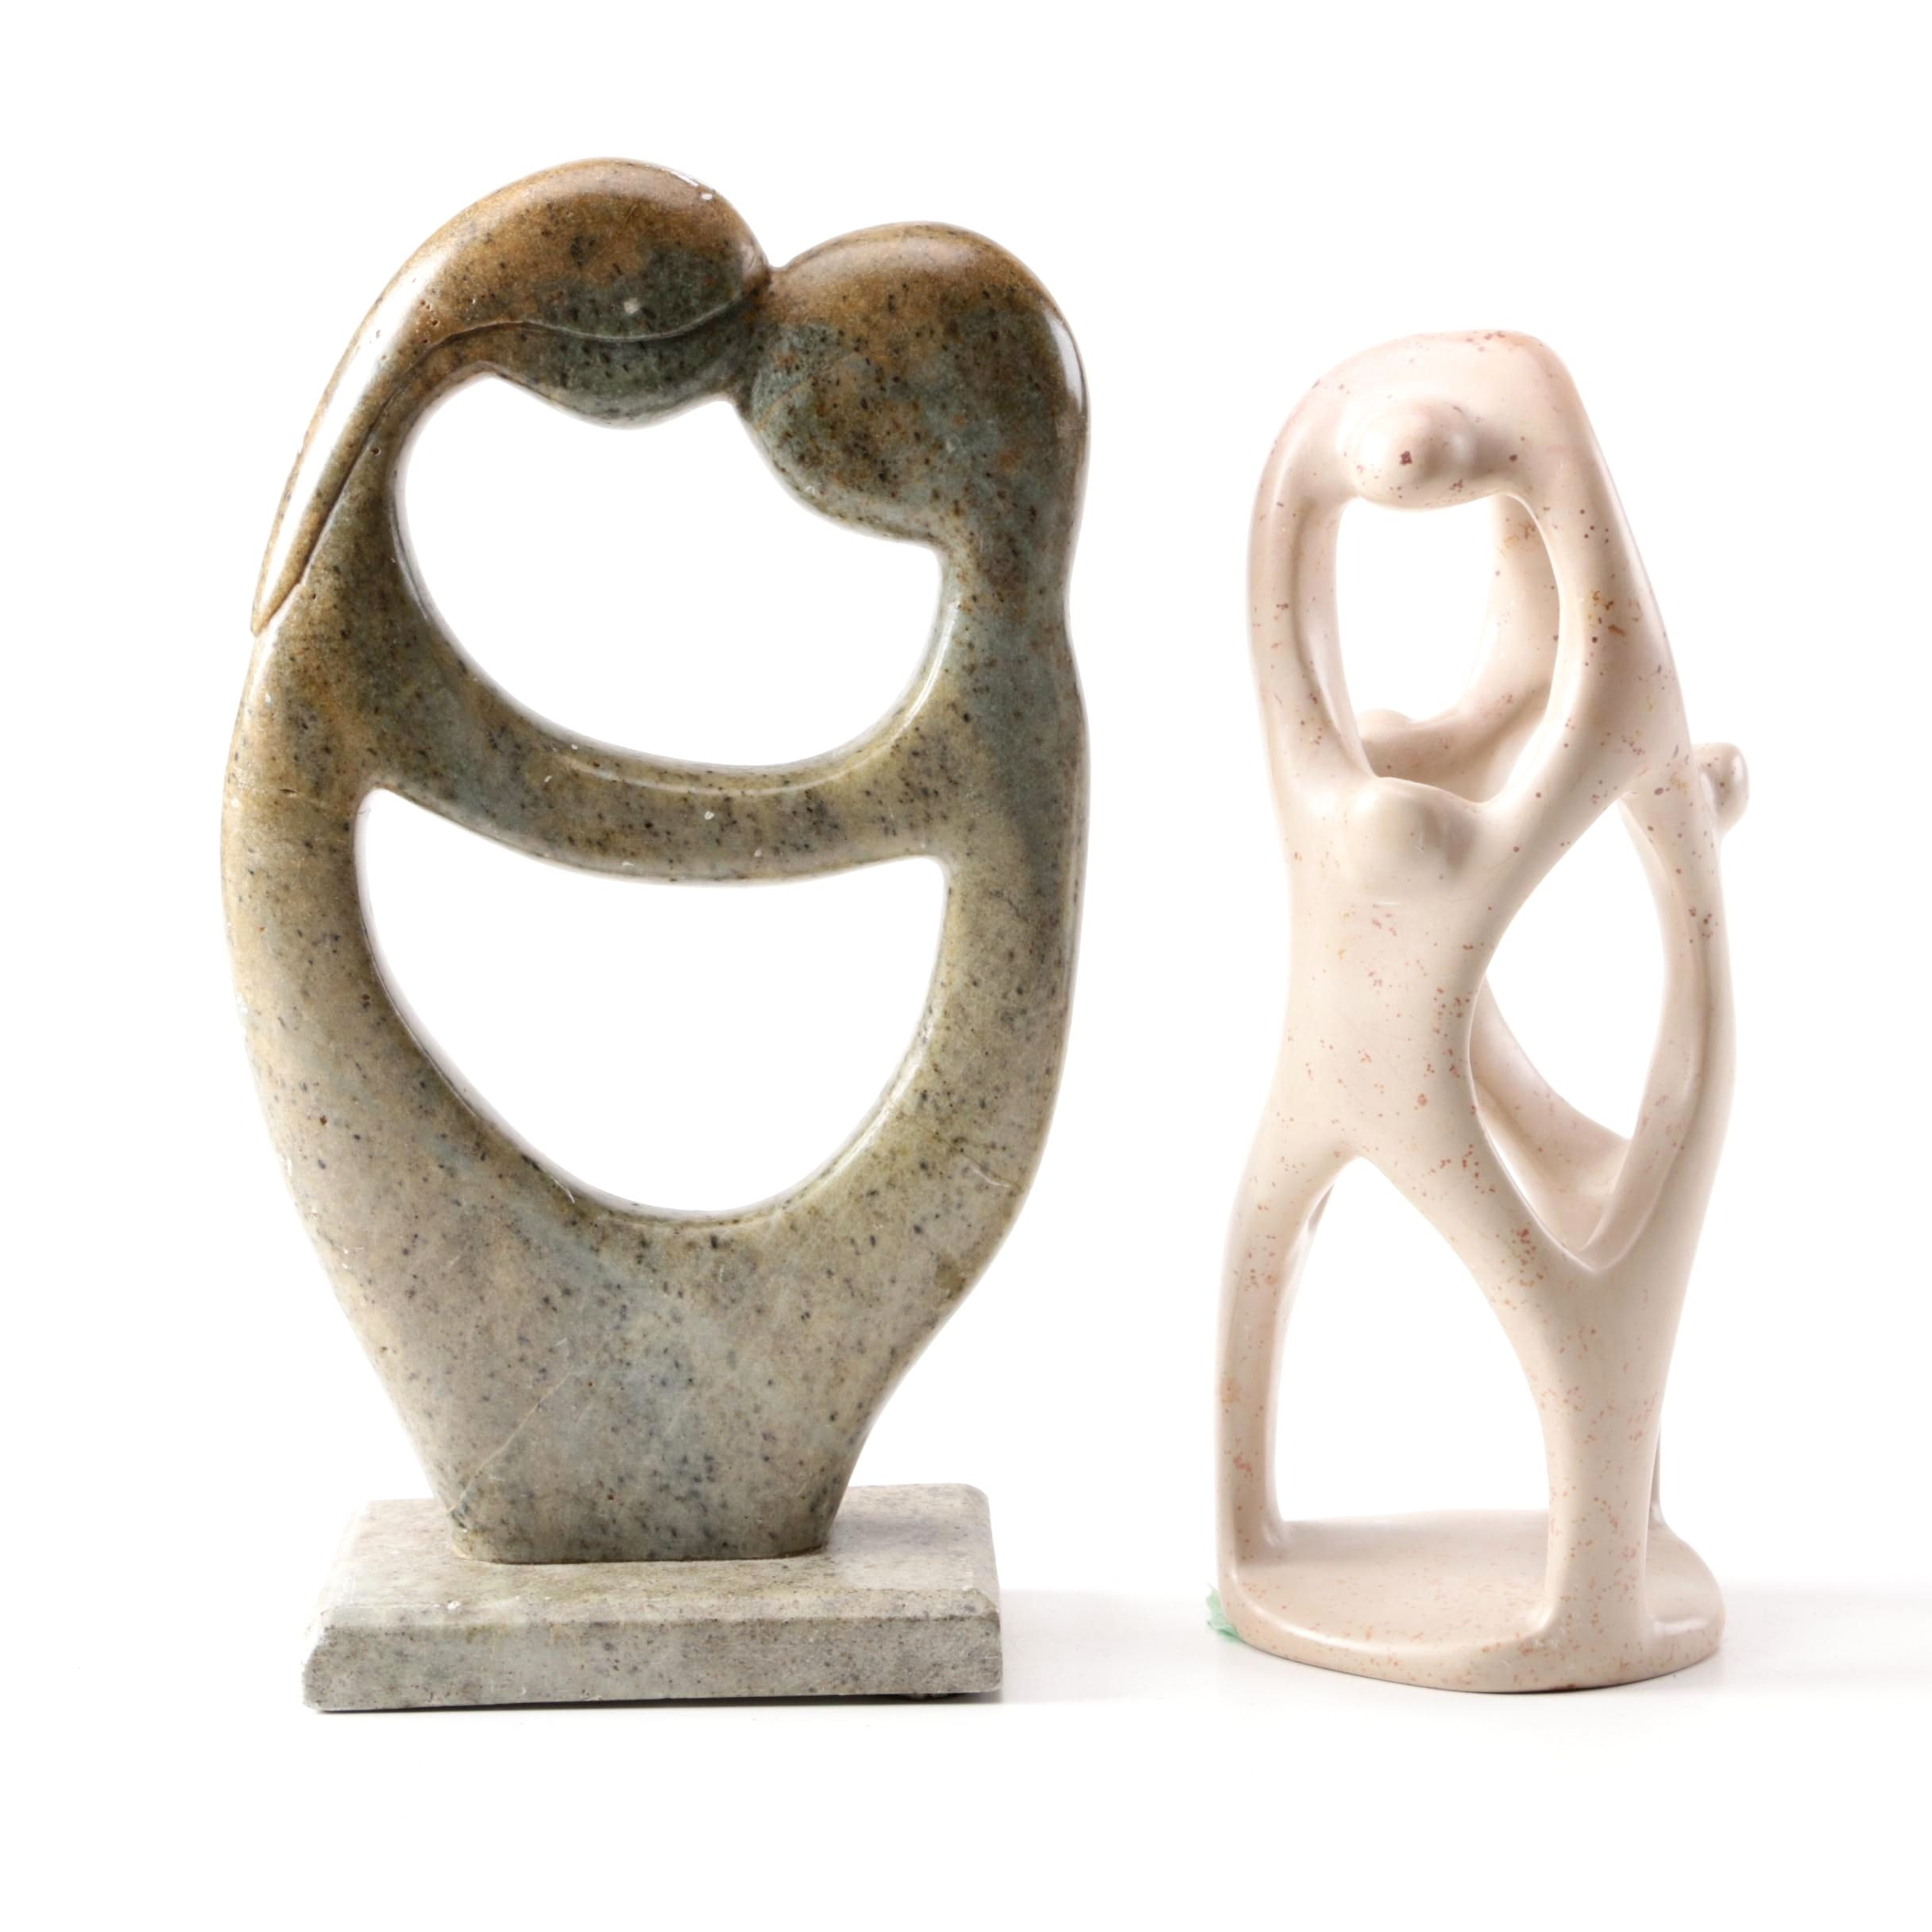 South African Style Figural Soapstone and Ceramic Sculptures